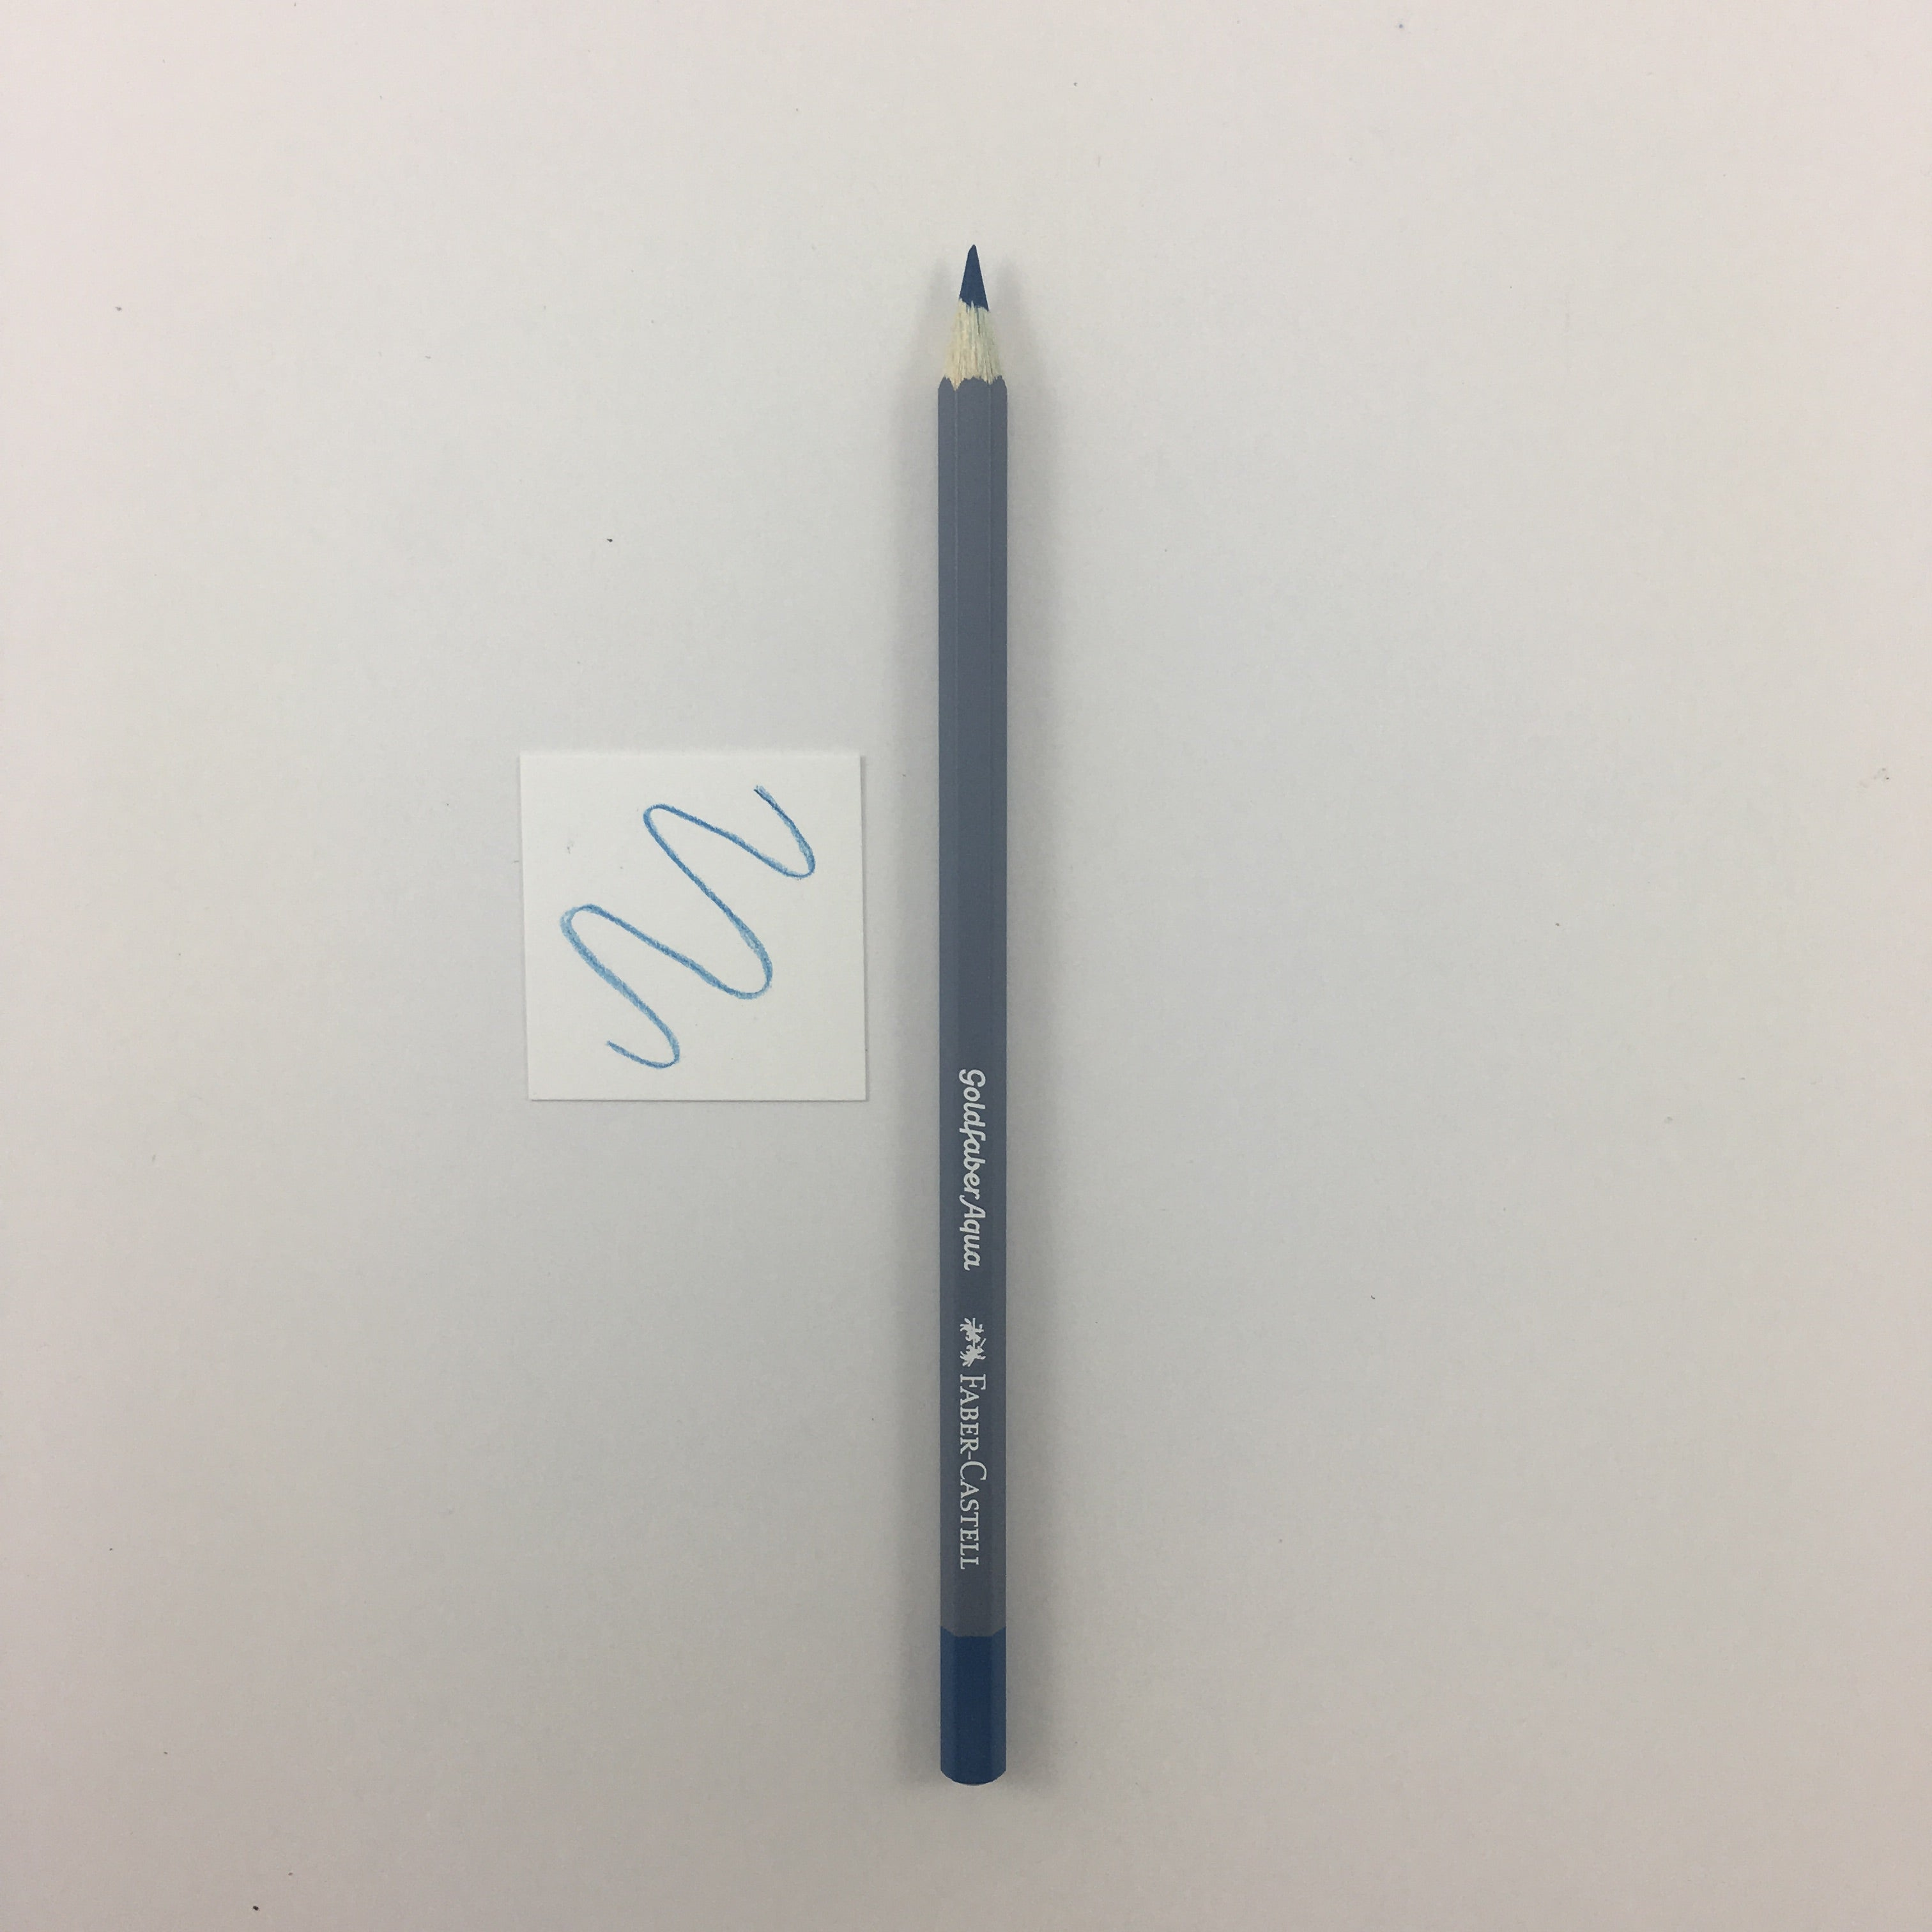 Faber-Castell Goldfaber Aqua Watercolor Pencils - Individuals - 149 - Bluish Turquoise by Faber-Castell - K. A. Artist Shop